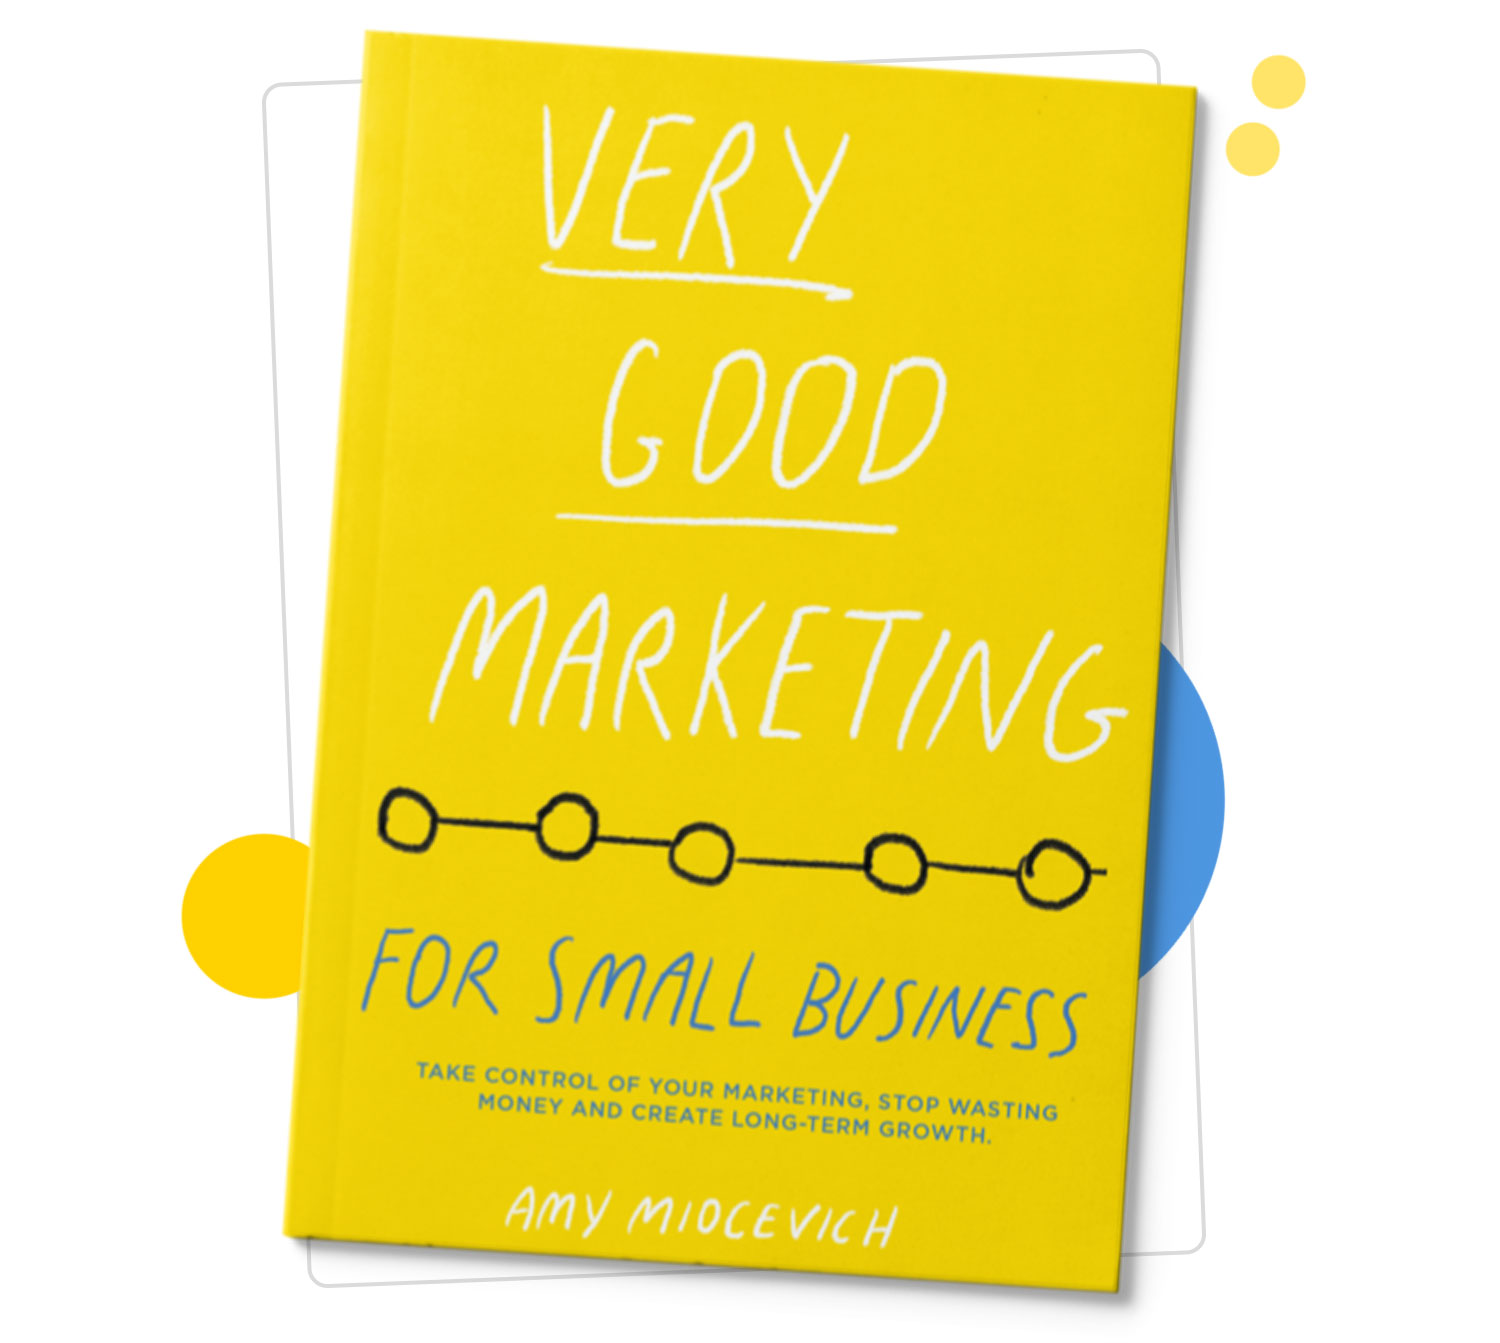 Very Good Marketing For Small Business by Amy Miocevich | Book for Small Business Marketing